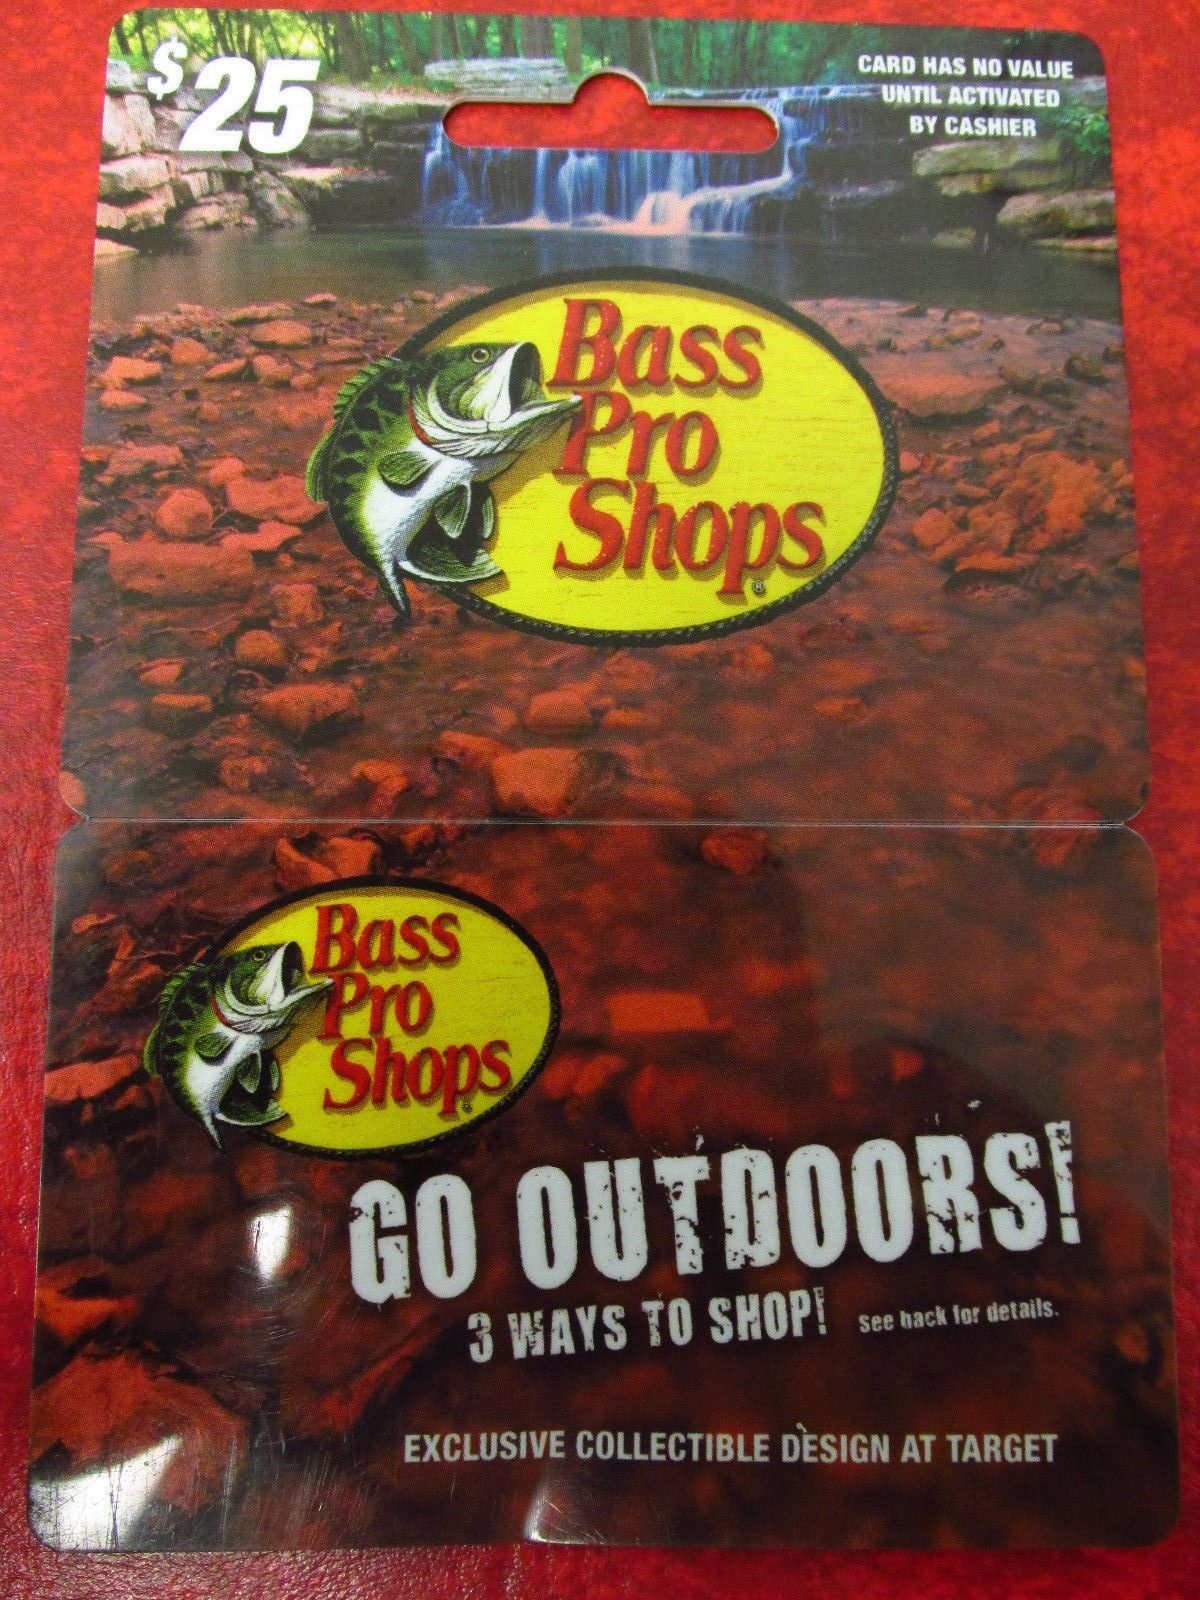 Coupons Giftcards Bass Pro Shop Gift Card 25 Coupons Giftcards Gift Card Cards Bass Pro Shop